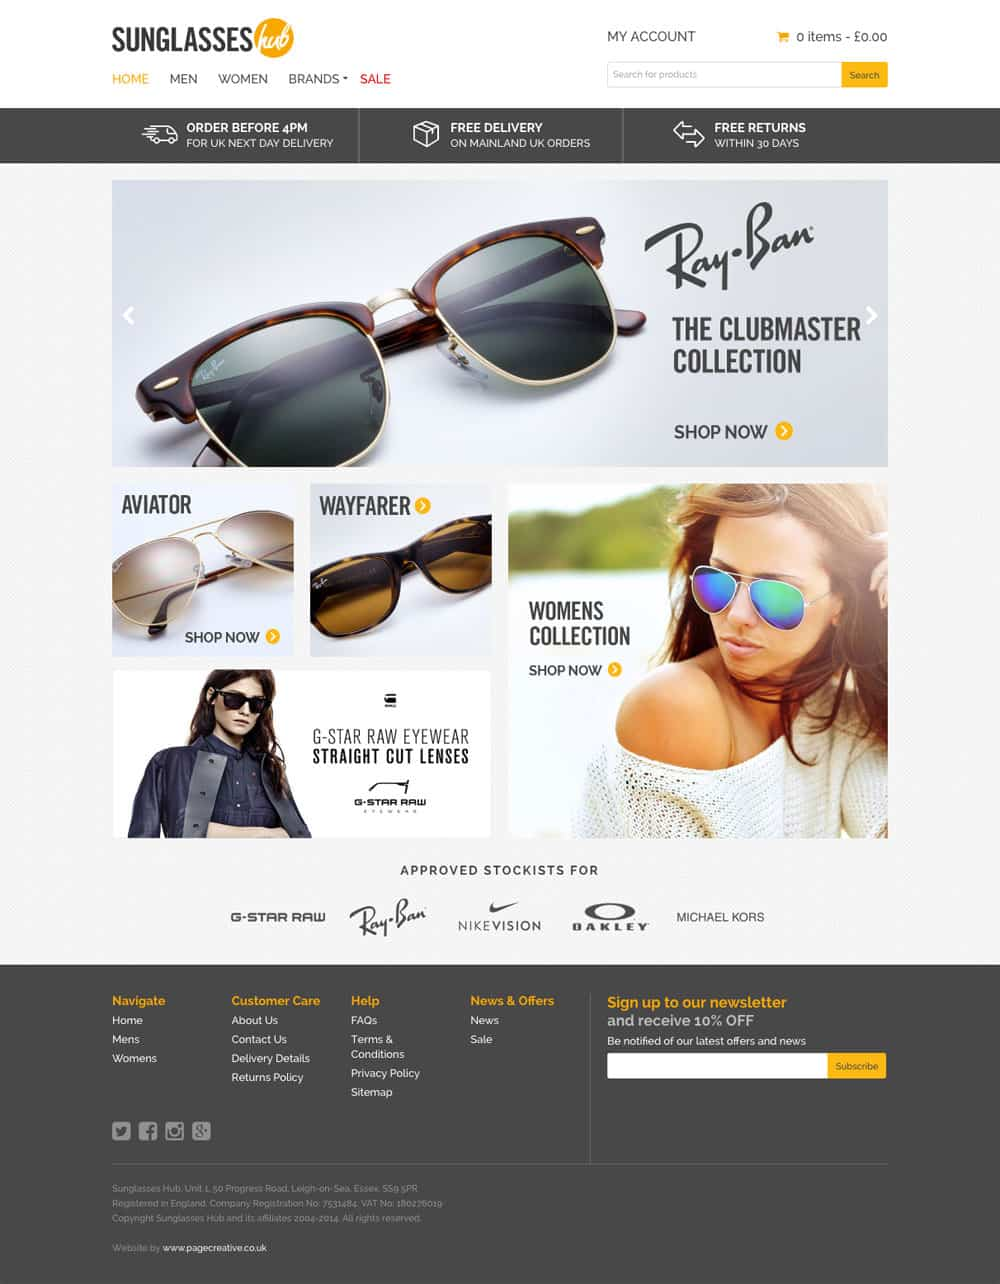 Sunglasses shop website design leigh on sea